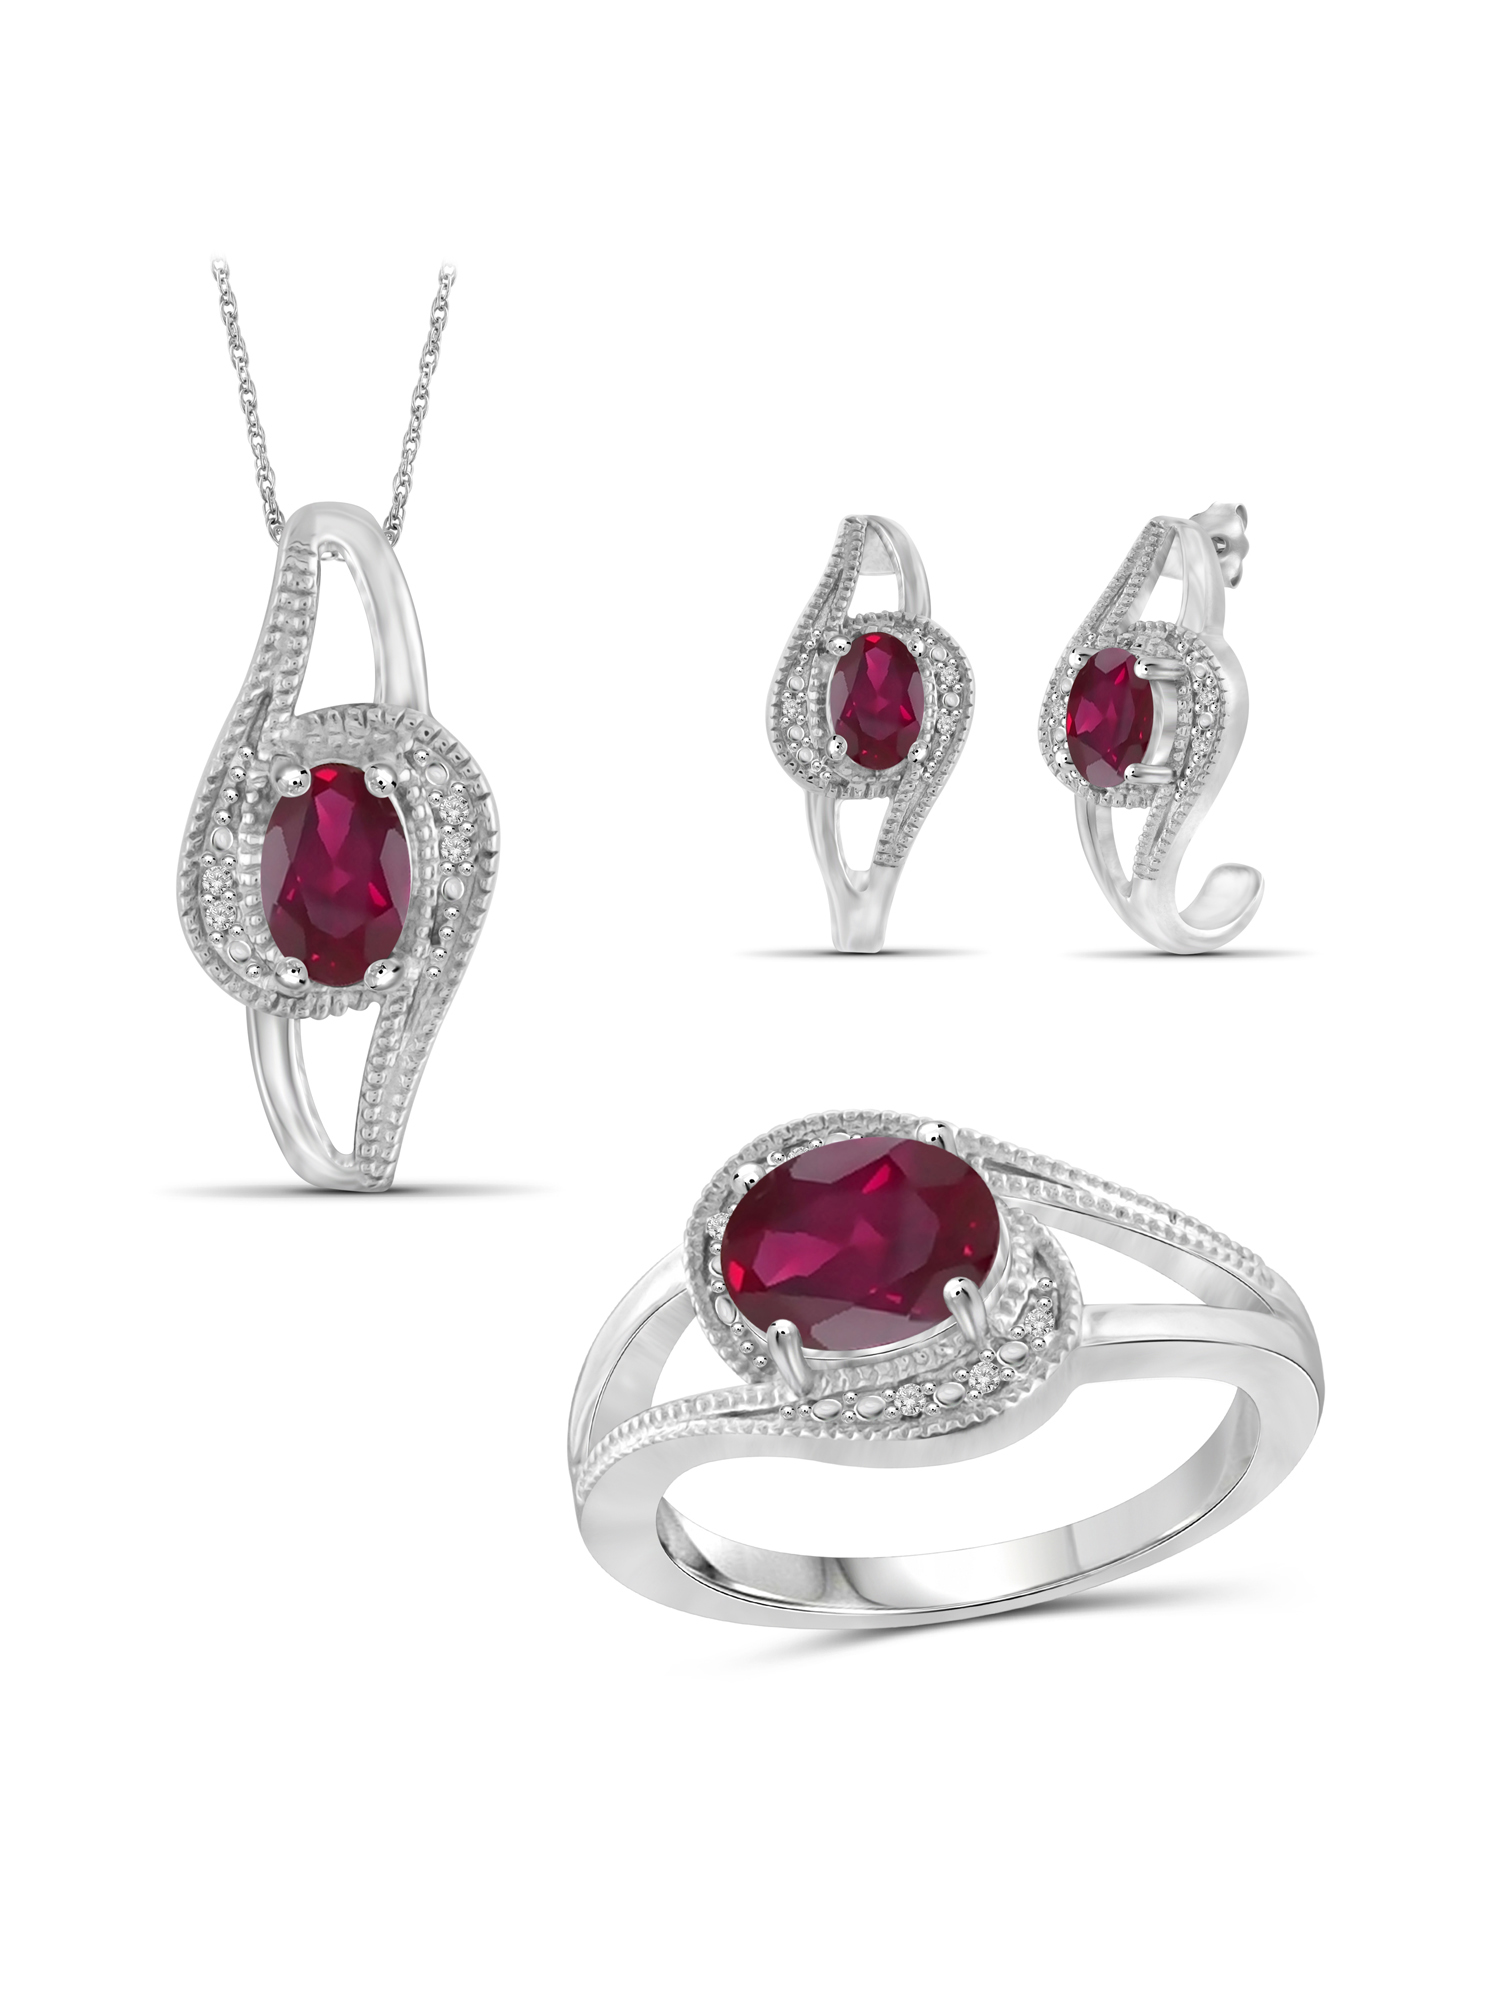 JewelersClub 3 1 3 Carat T.G.W. Ruby And White Diamond Accent Sterling Silver 3-Piece Jewelry set by JewelersClub